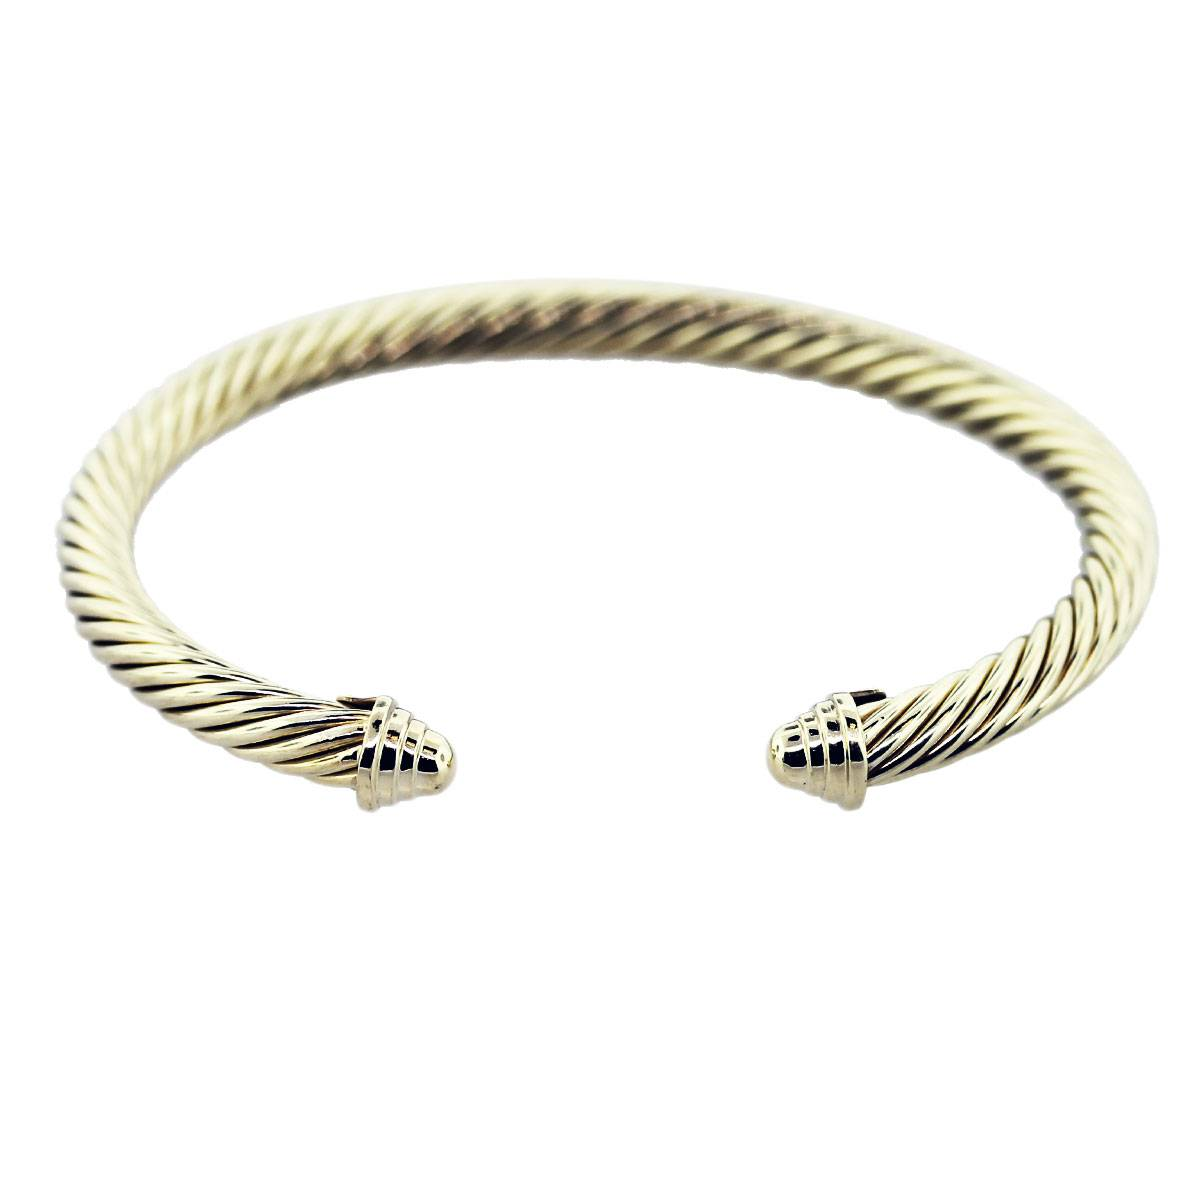 David yurman classic cable 5mm cuff bracelet 14k yellow gold for David yurman like bracelets